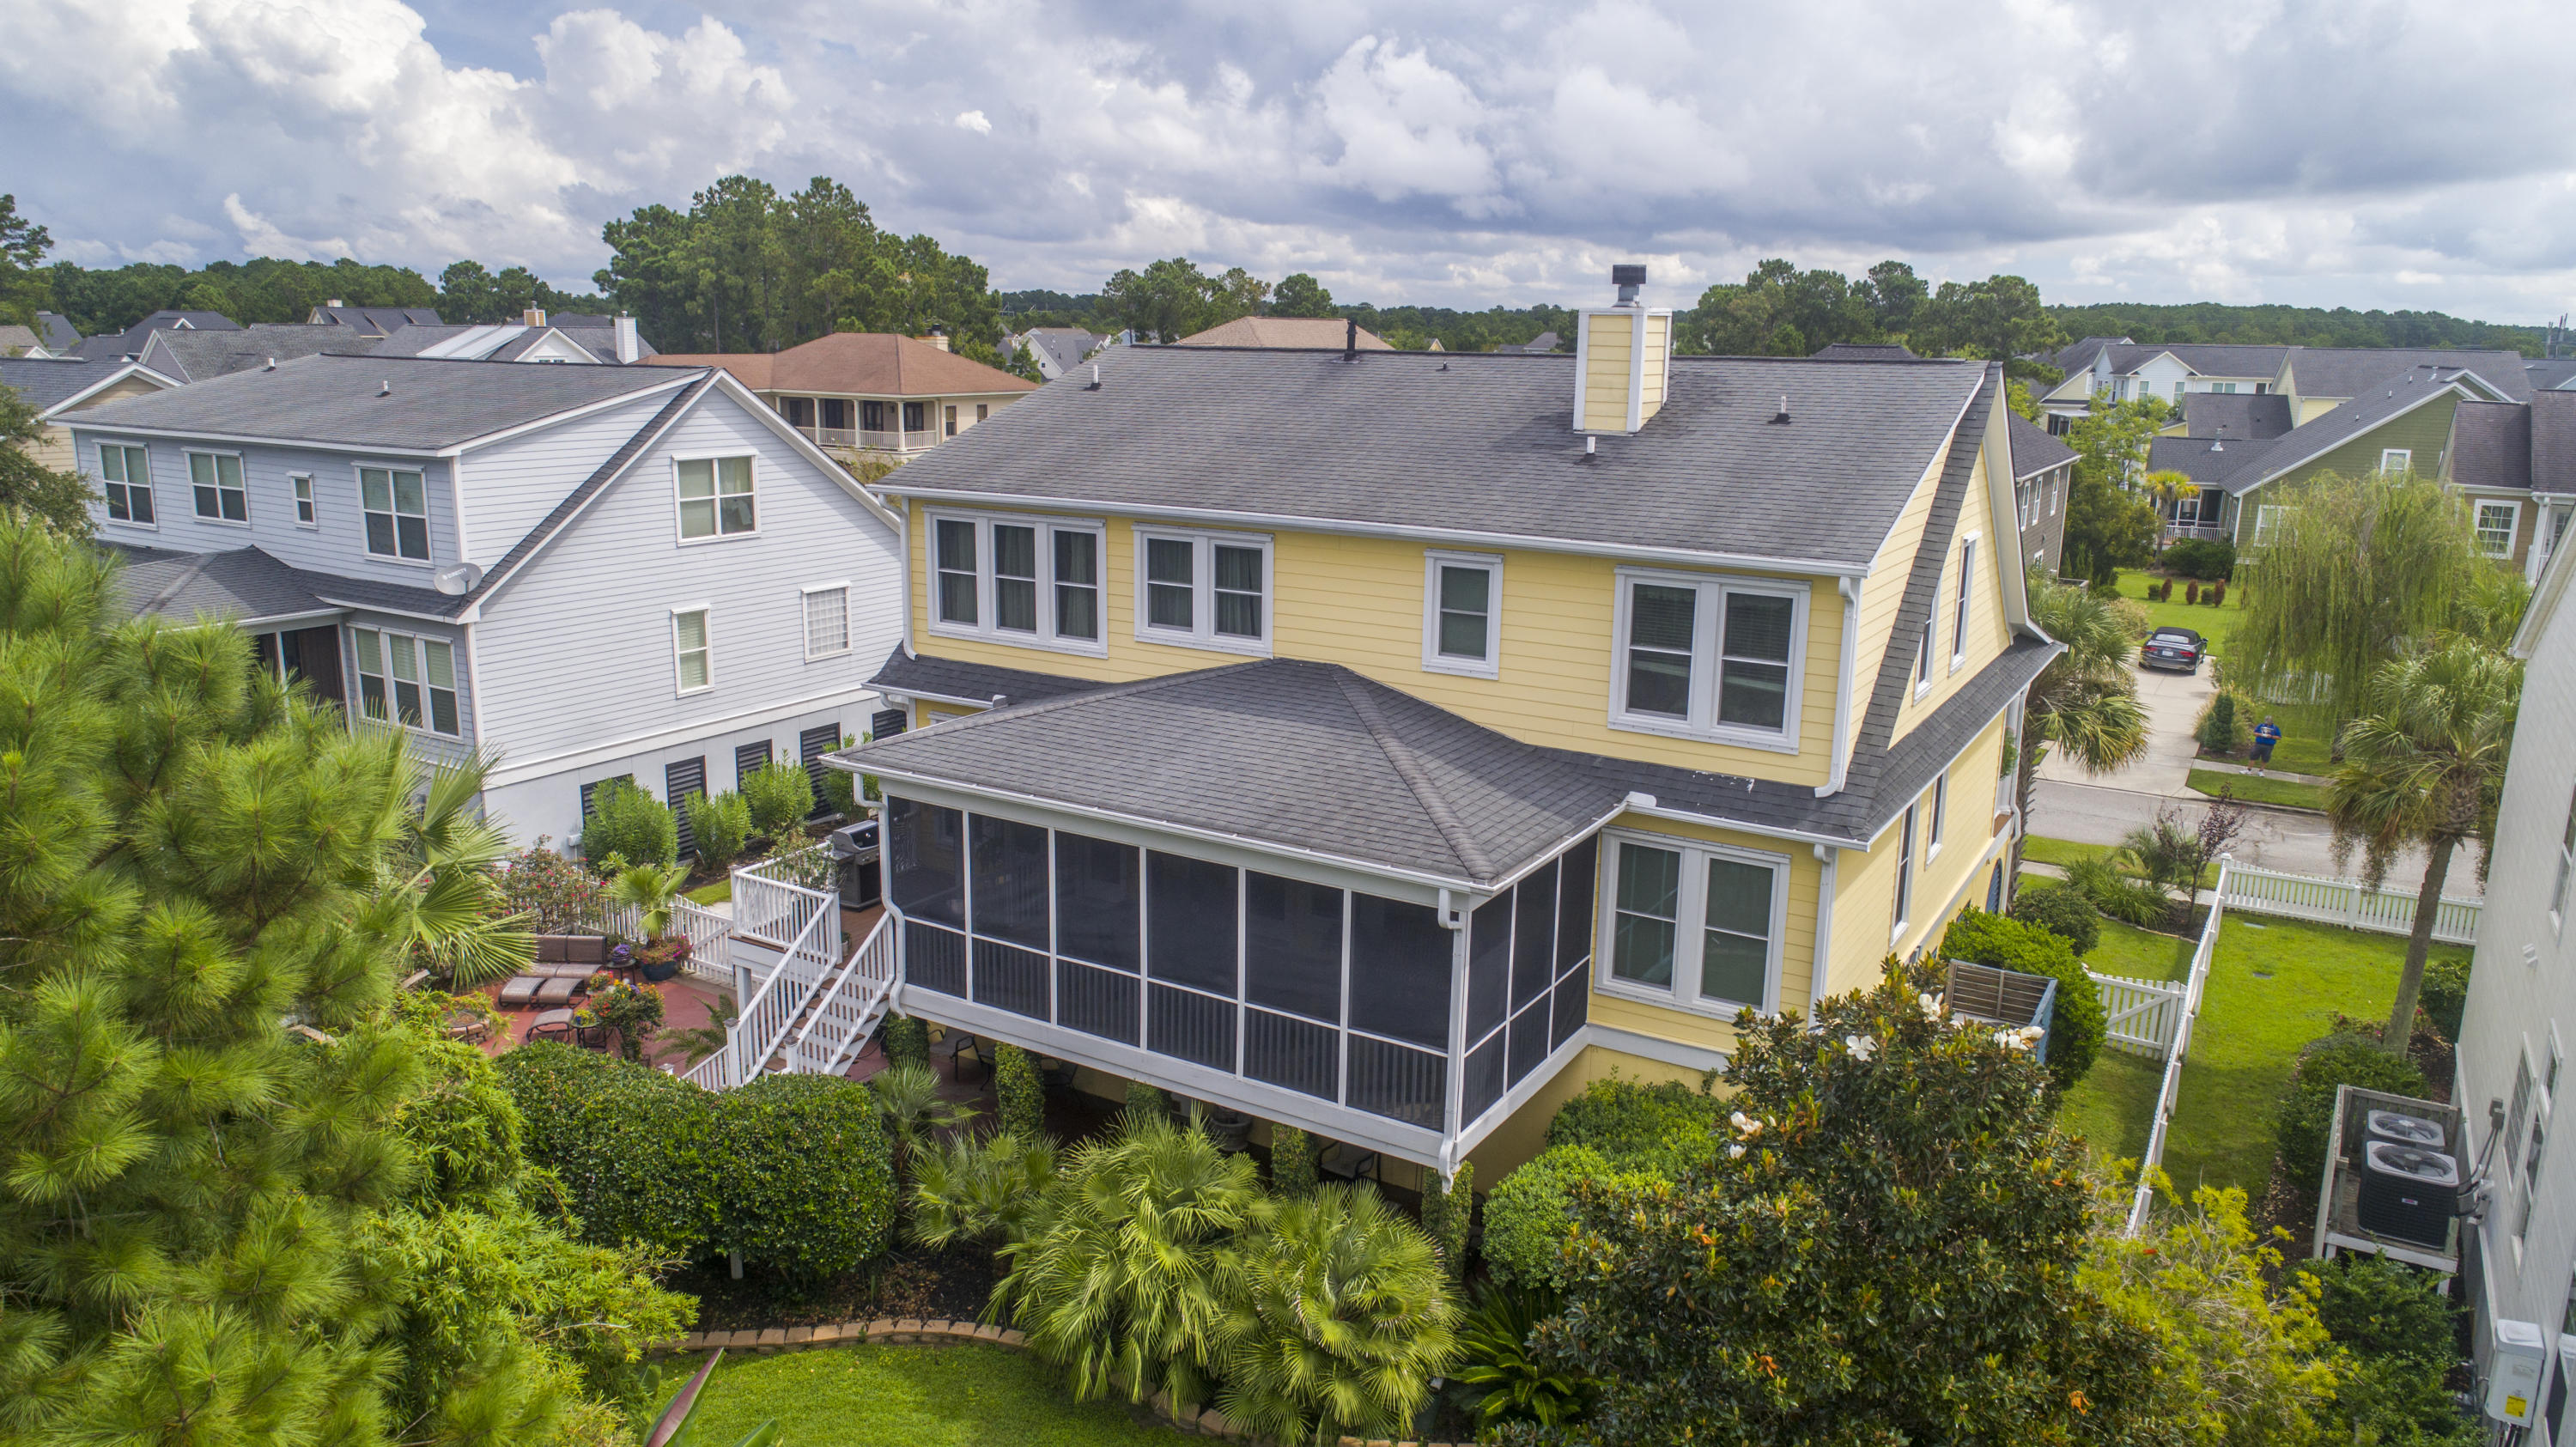 Rivertowne On The Wando Homes For Sale - 2006 Shields, Mount Pleasant, SC - 10